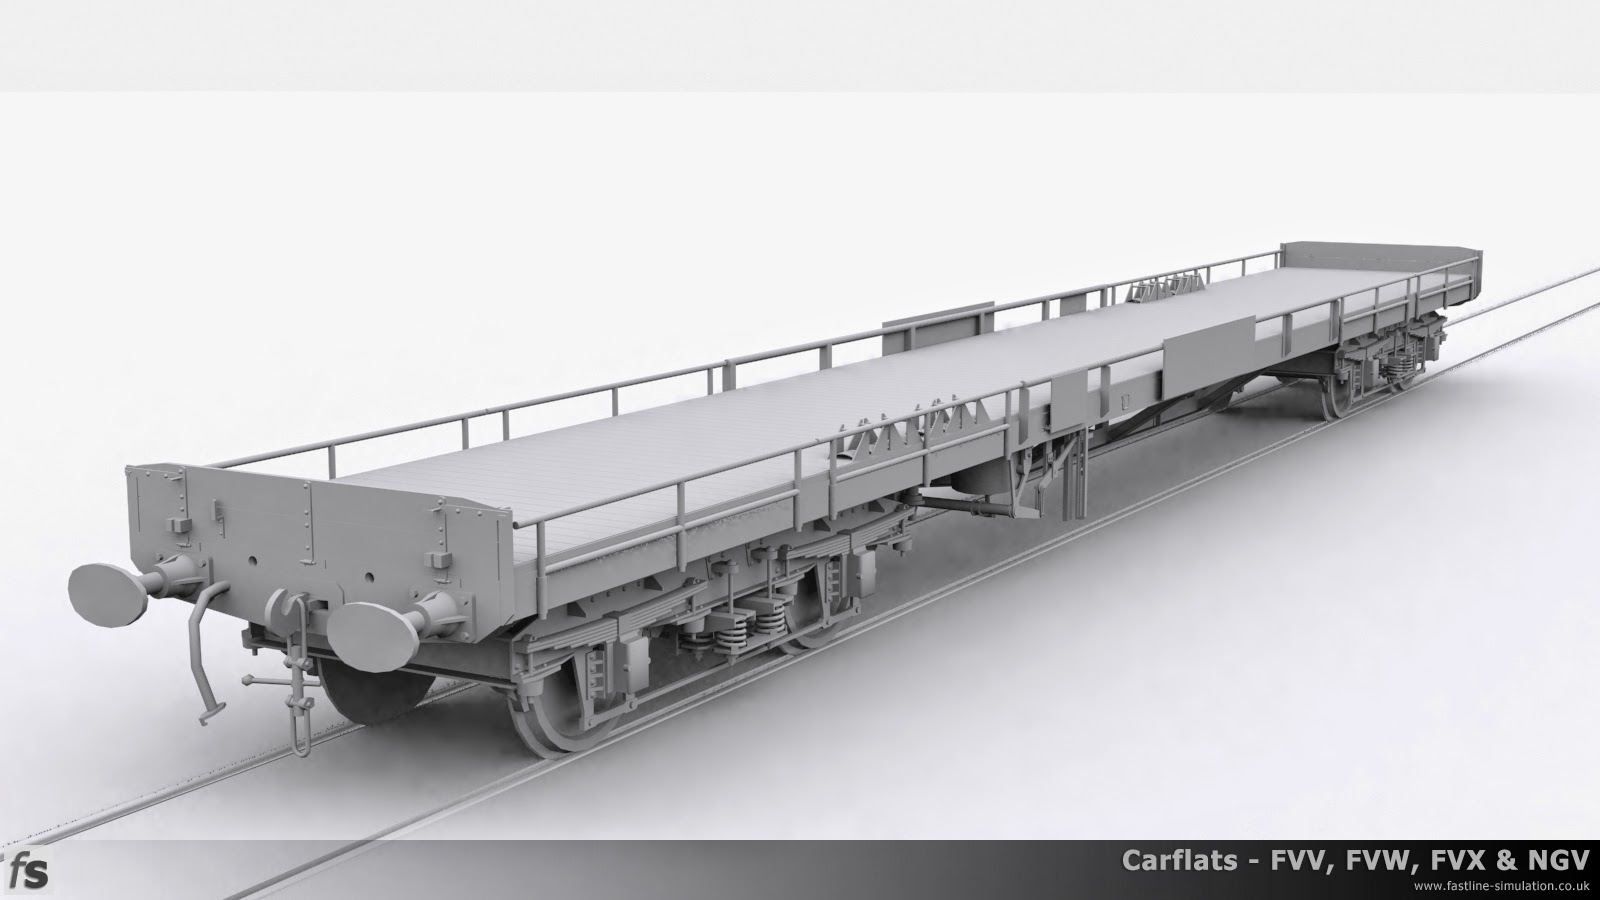 Fastline Simulation - Carflats: This configuration is possibly the most intriguing as it appears to be a conversion from other diagrams and has gained taller than usual split side rails, in this case the original was from dia. 1/131 and is vacuum braked. Wheel chocks for vehicles can be seen on the deck of the wagon.